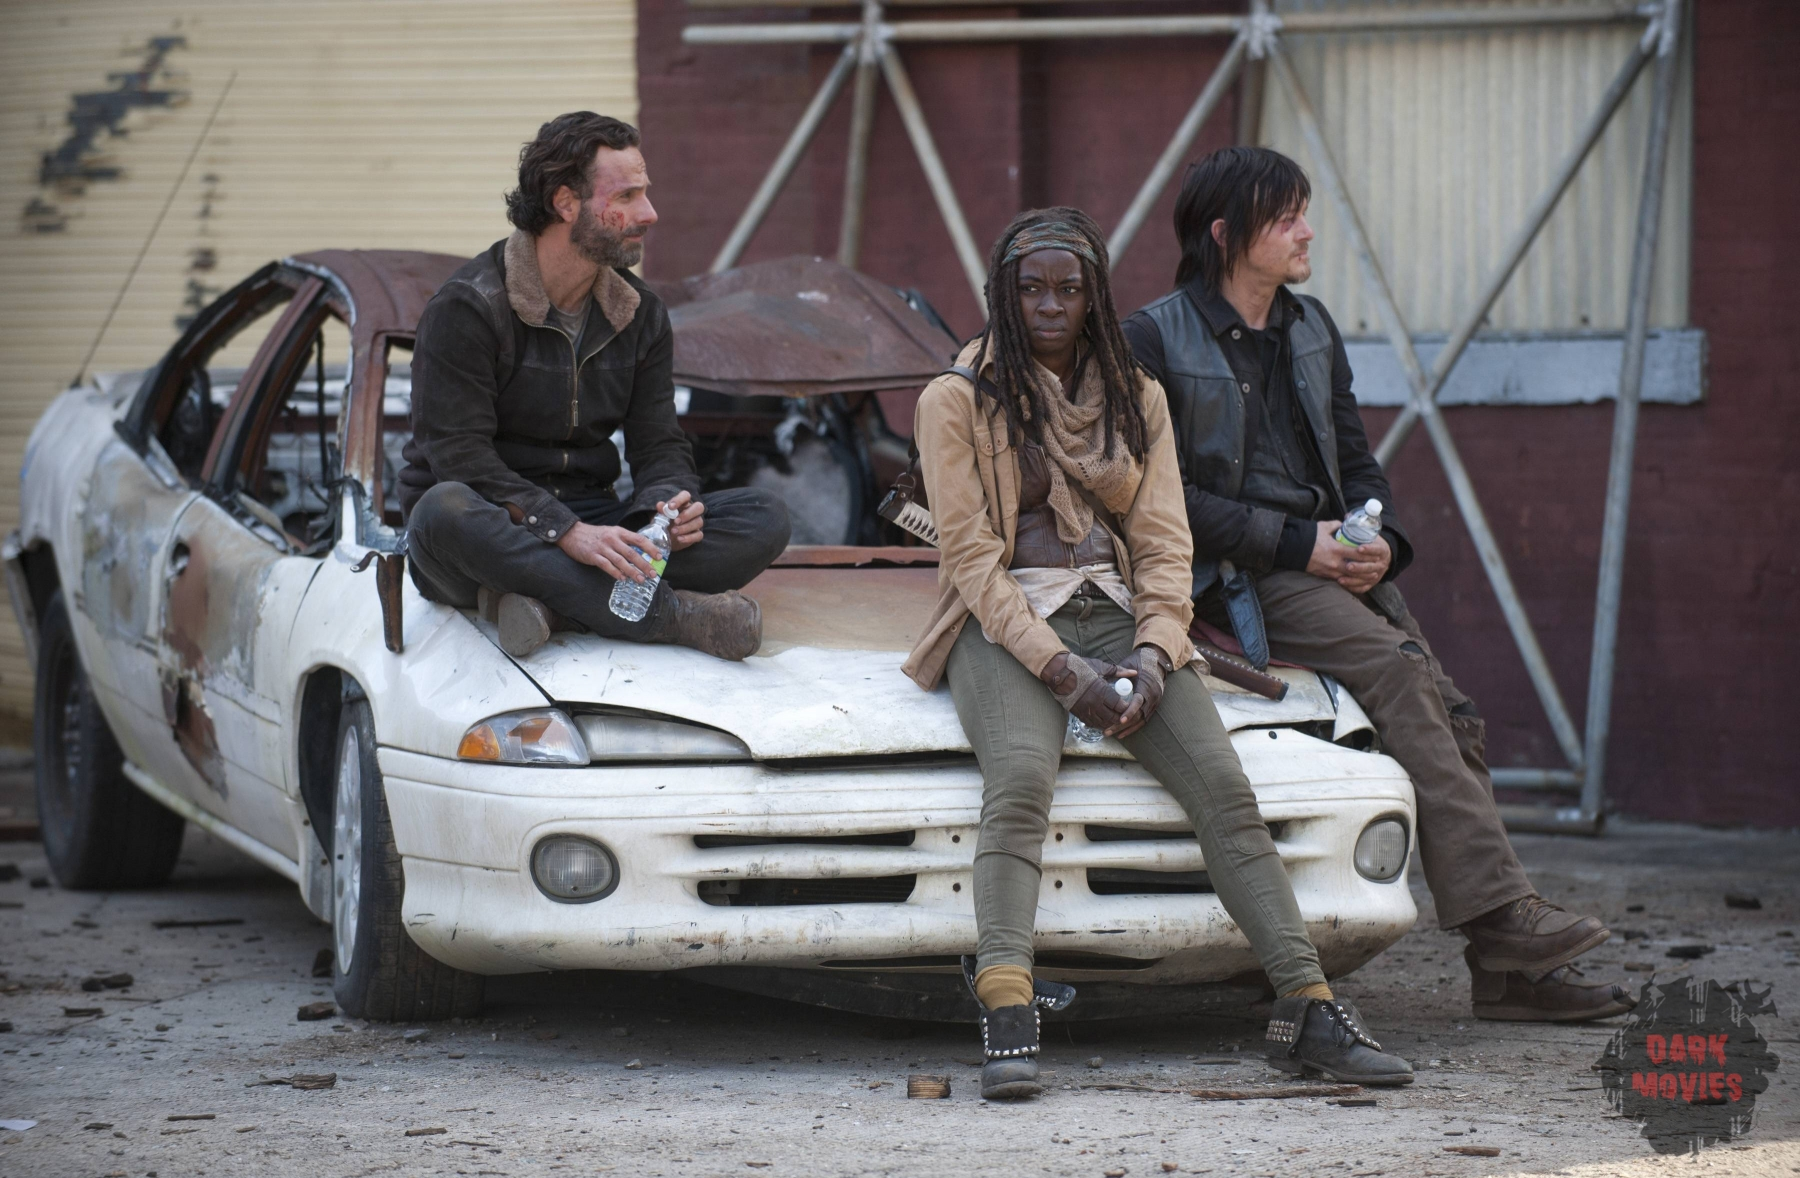 Andrew Lincoln, Danai Gurira and Norman Reedus - The Walking Dead _ BTS - Season 4, Episode 16 - Photo Credit: Gene Page/AMC